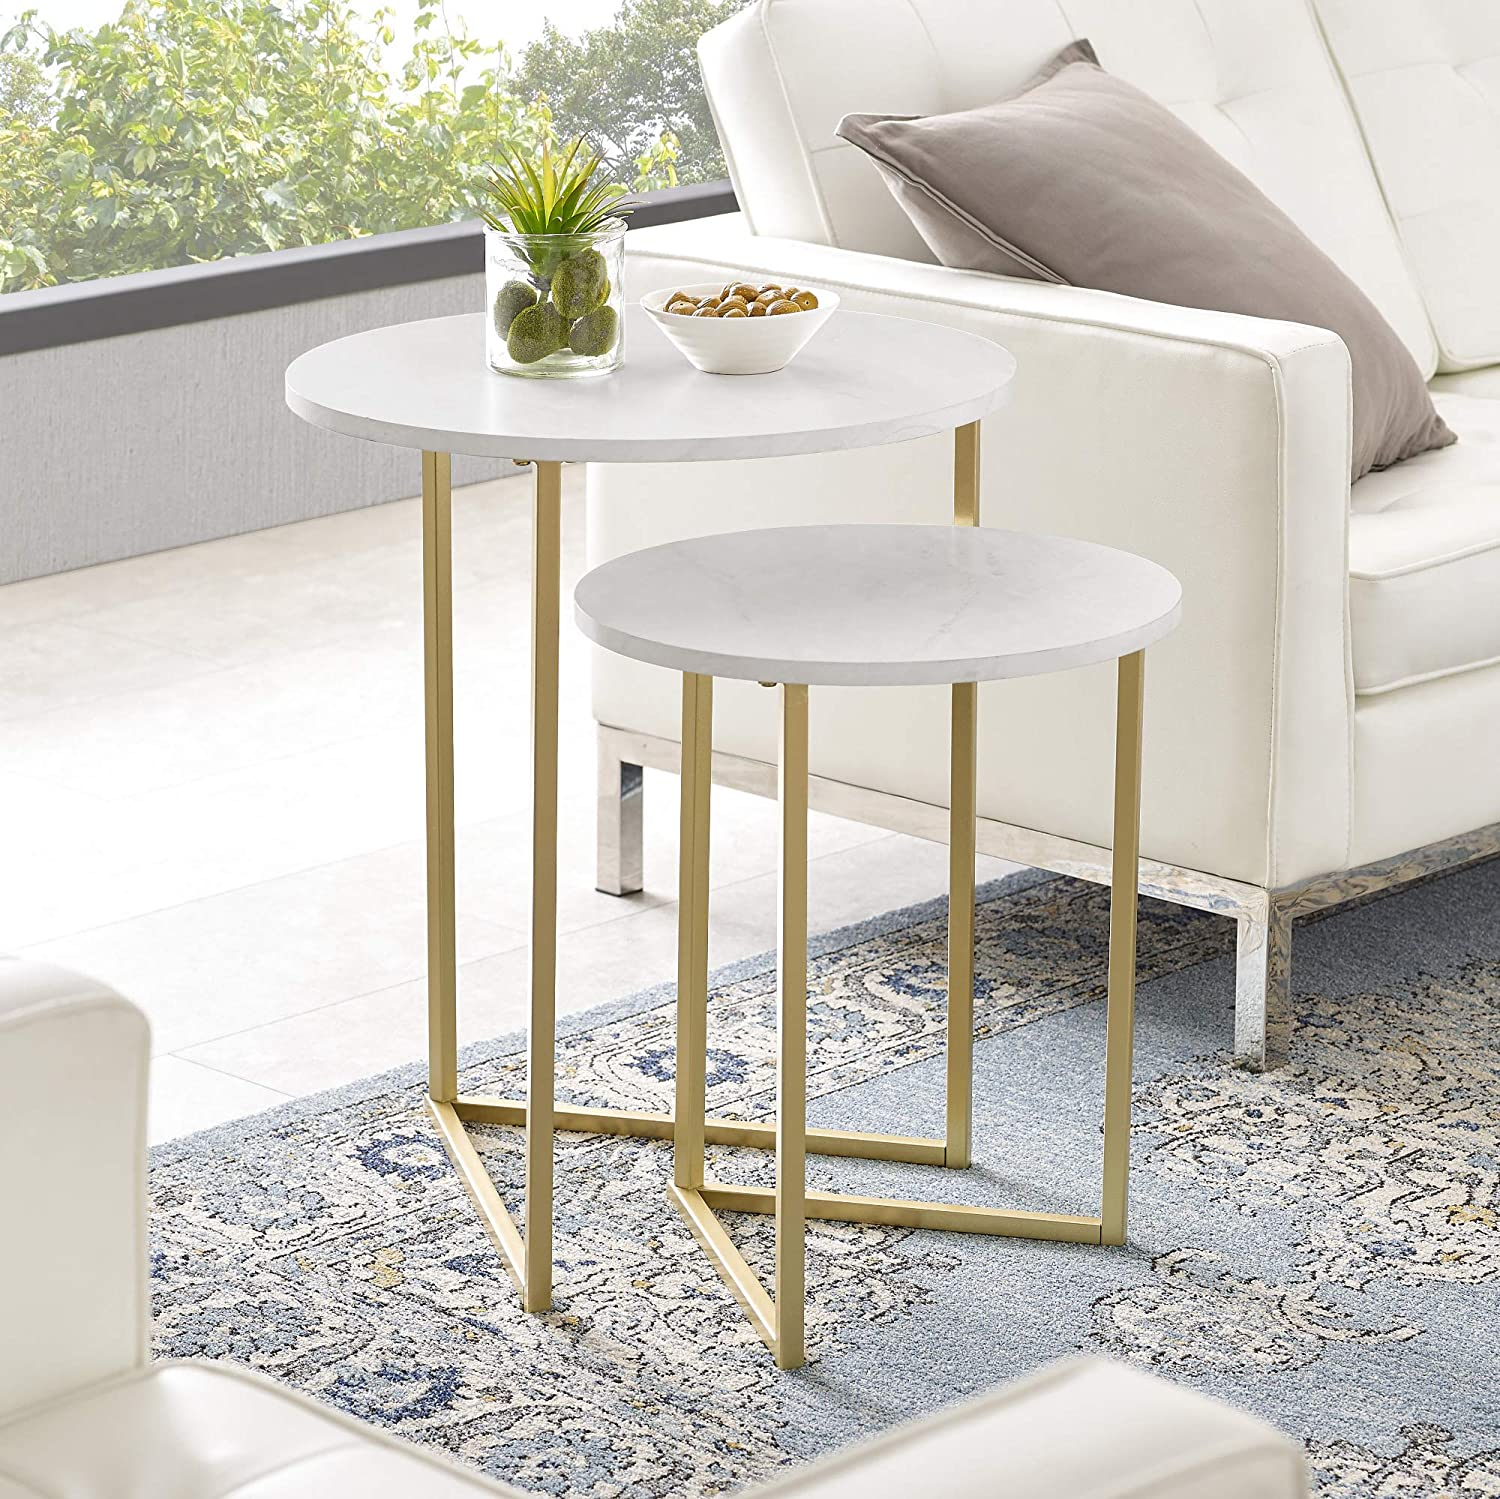 Walker Edison Furniture Company AZFVICNSTMW Modern Round Metal Base Nesting Set Side Accent Living Room Storage Small End Table, Set of 2, White Marble/Gold